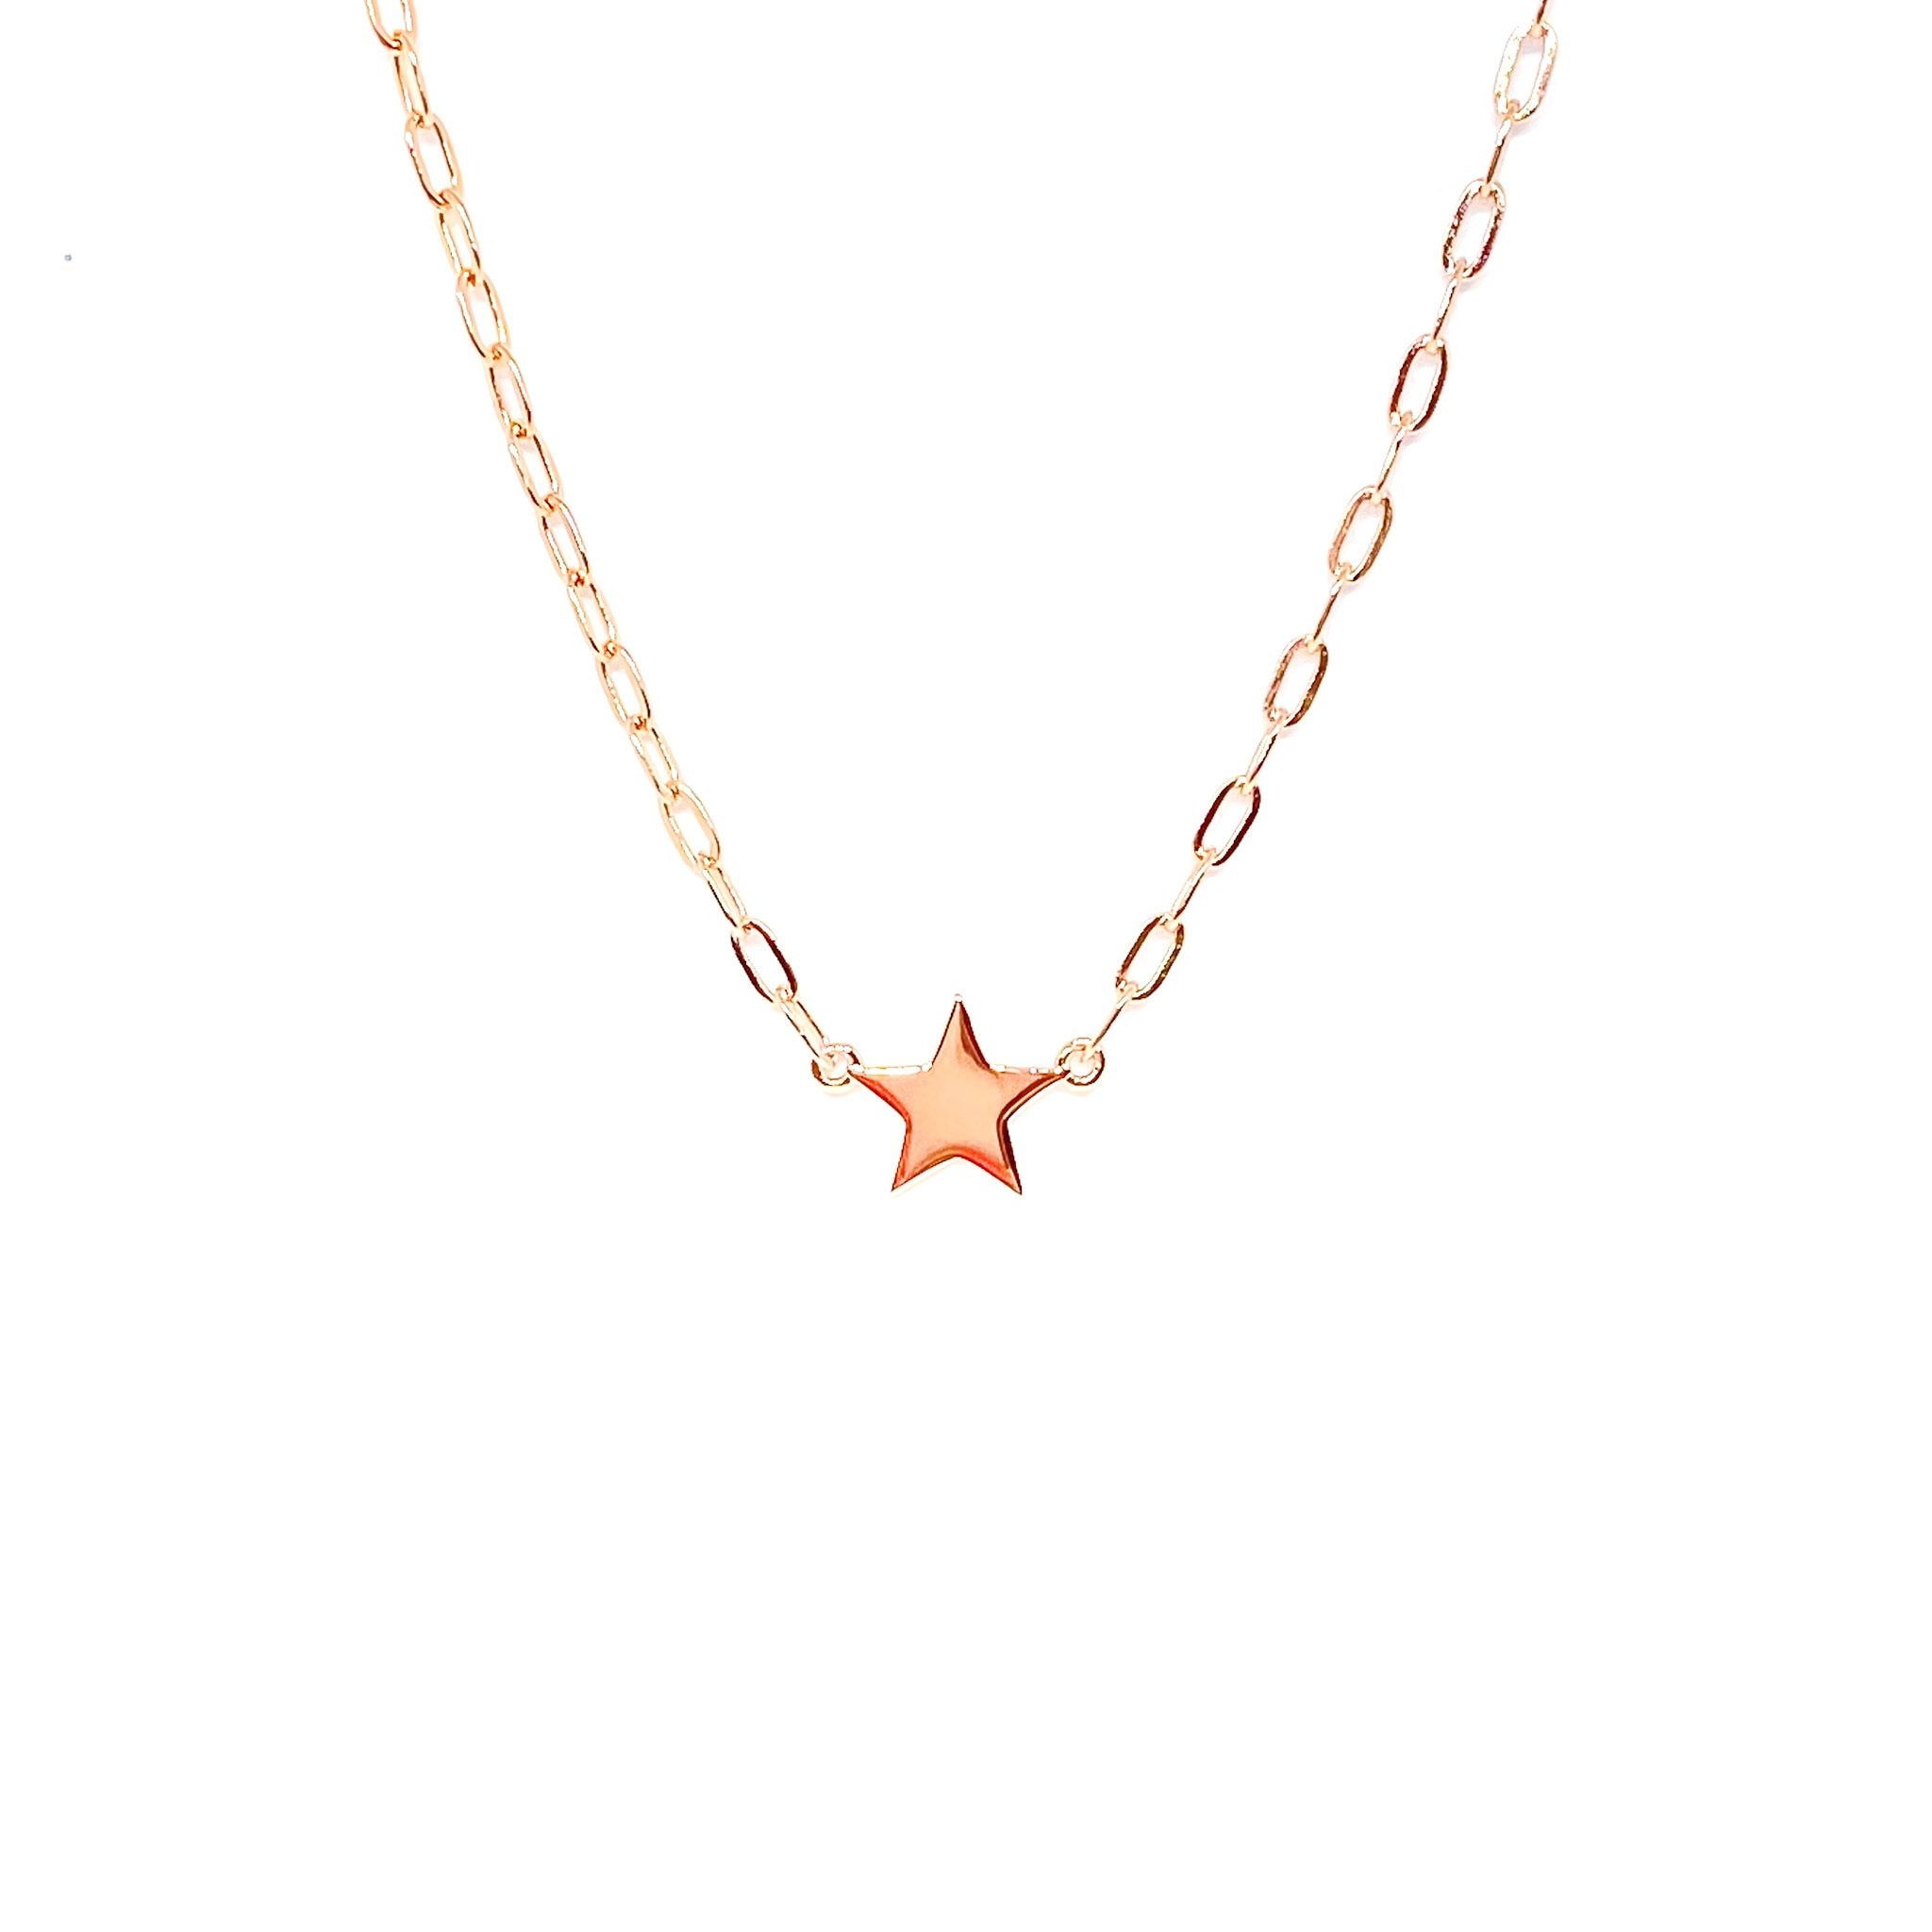 Drawn Chain Laser Star Necklace